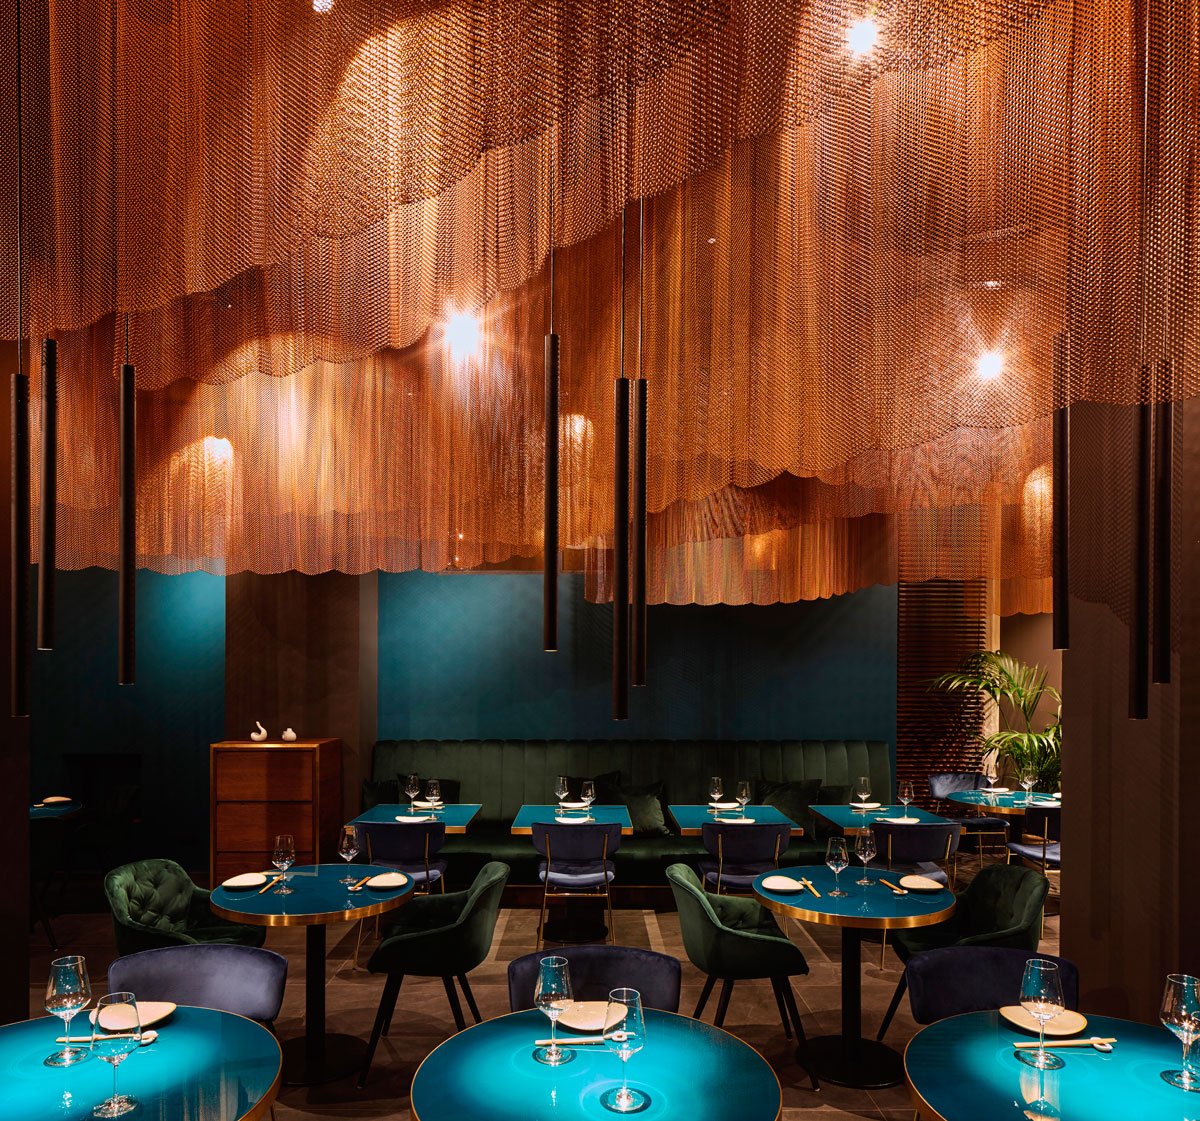 Nishiki Restaurant Milan And The Pleasure Of Sushi In A Modern Japanese Restaurant By Naos Design Interior Designer Antonia Lowe